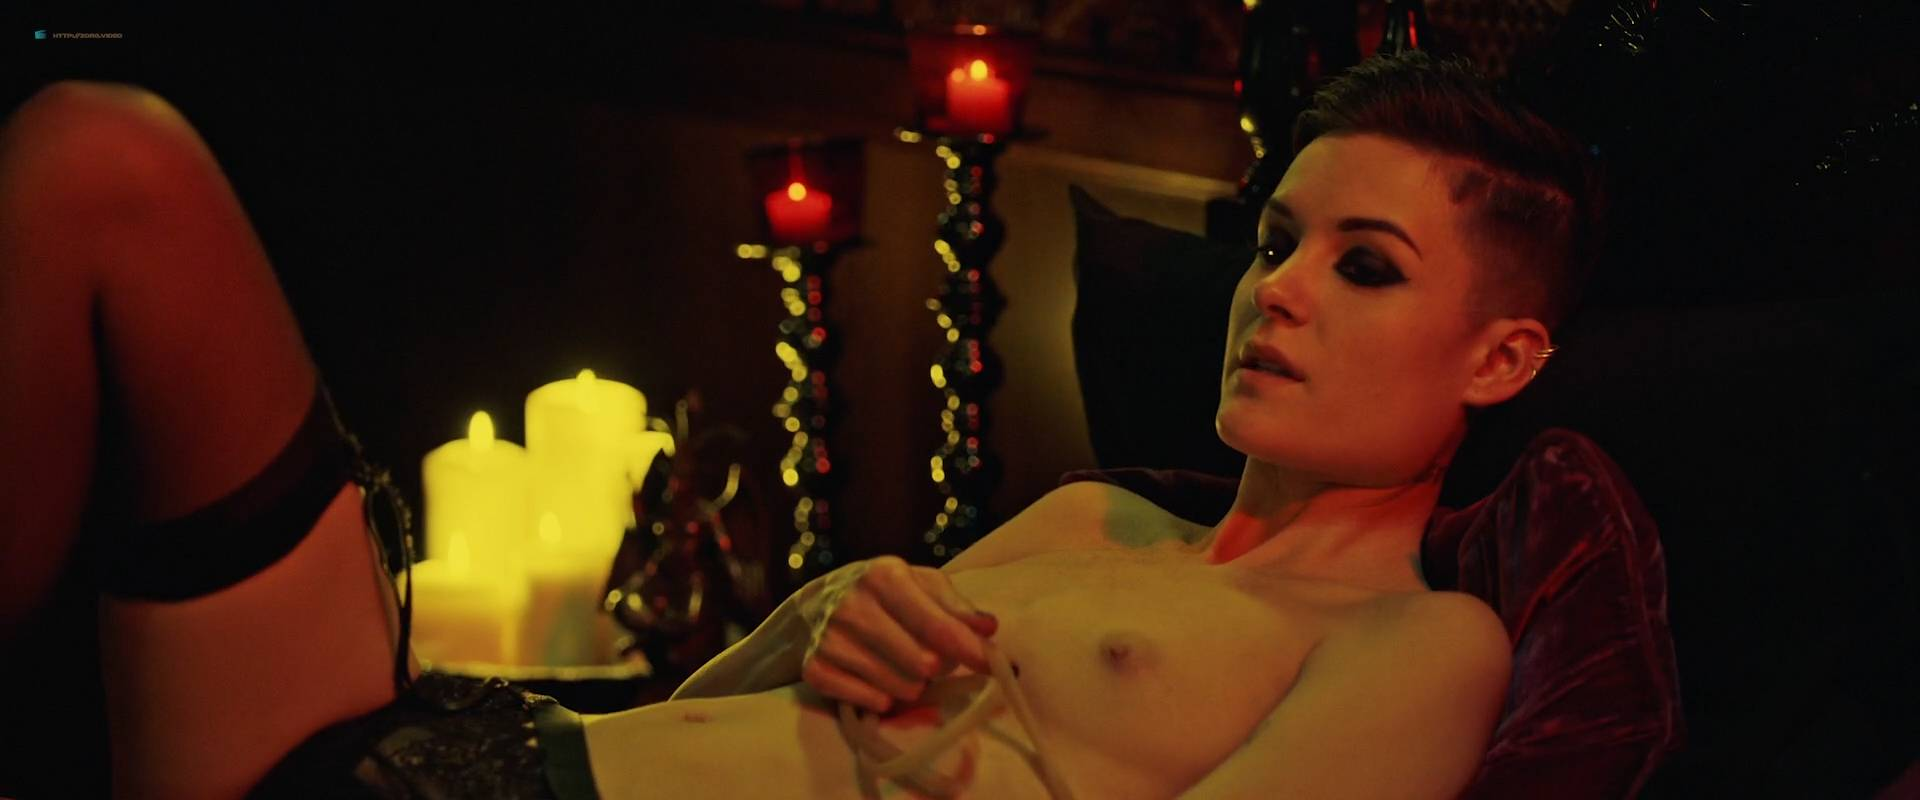 Jesse Sullivan nude topless Cortney Palm and others nude topless too - American Satan (2017) HD 1080p Web (8)